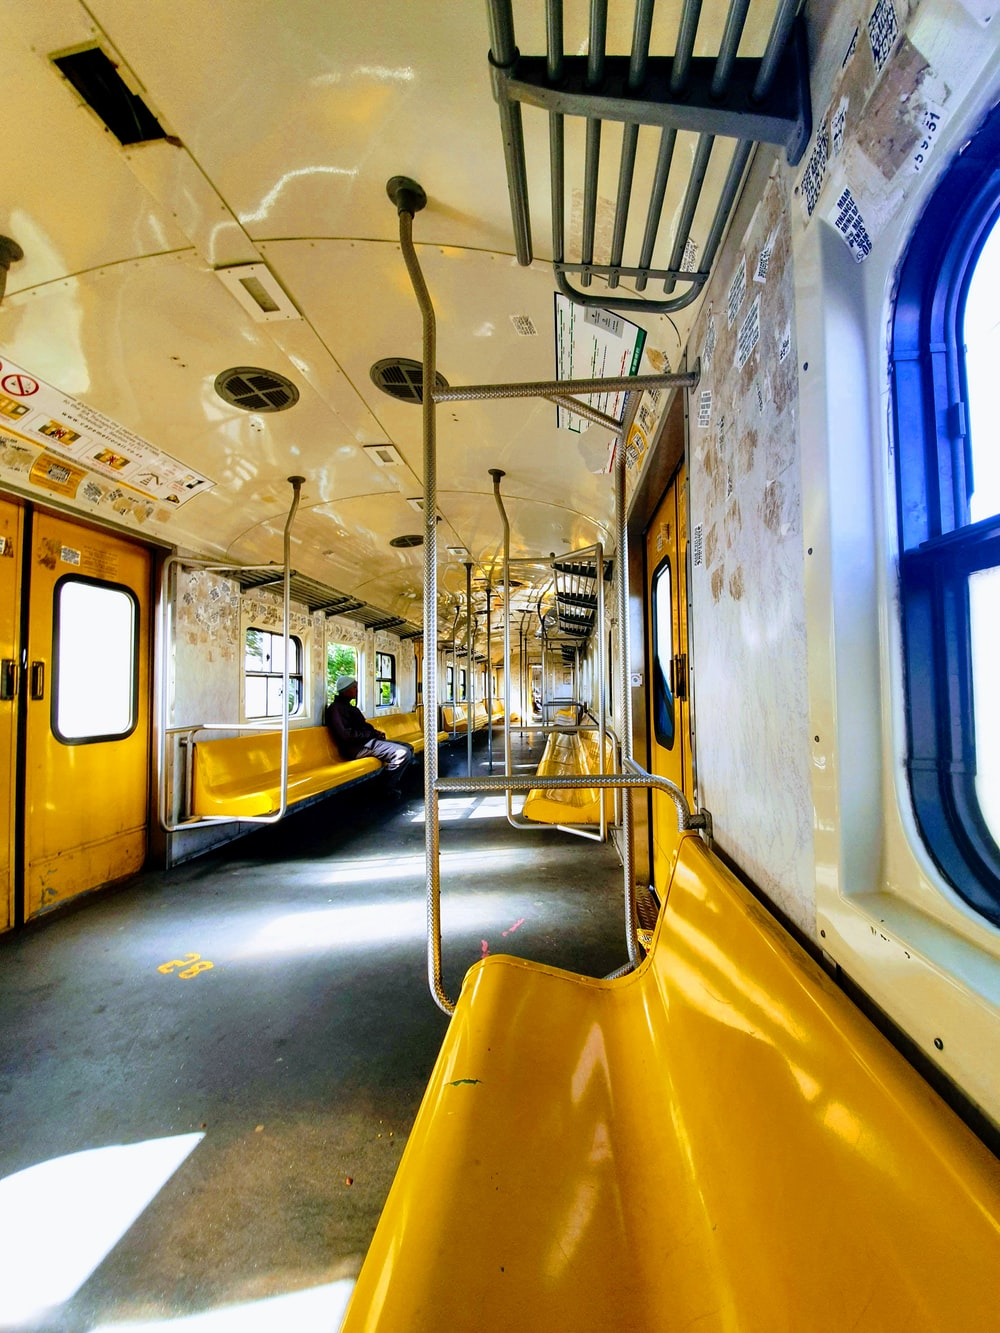 yellow and blue train in train station